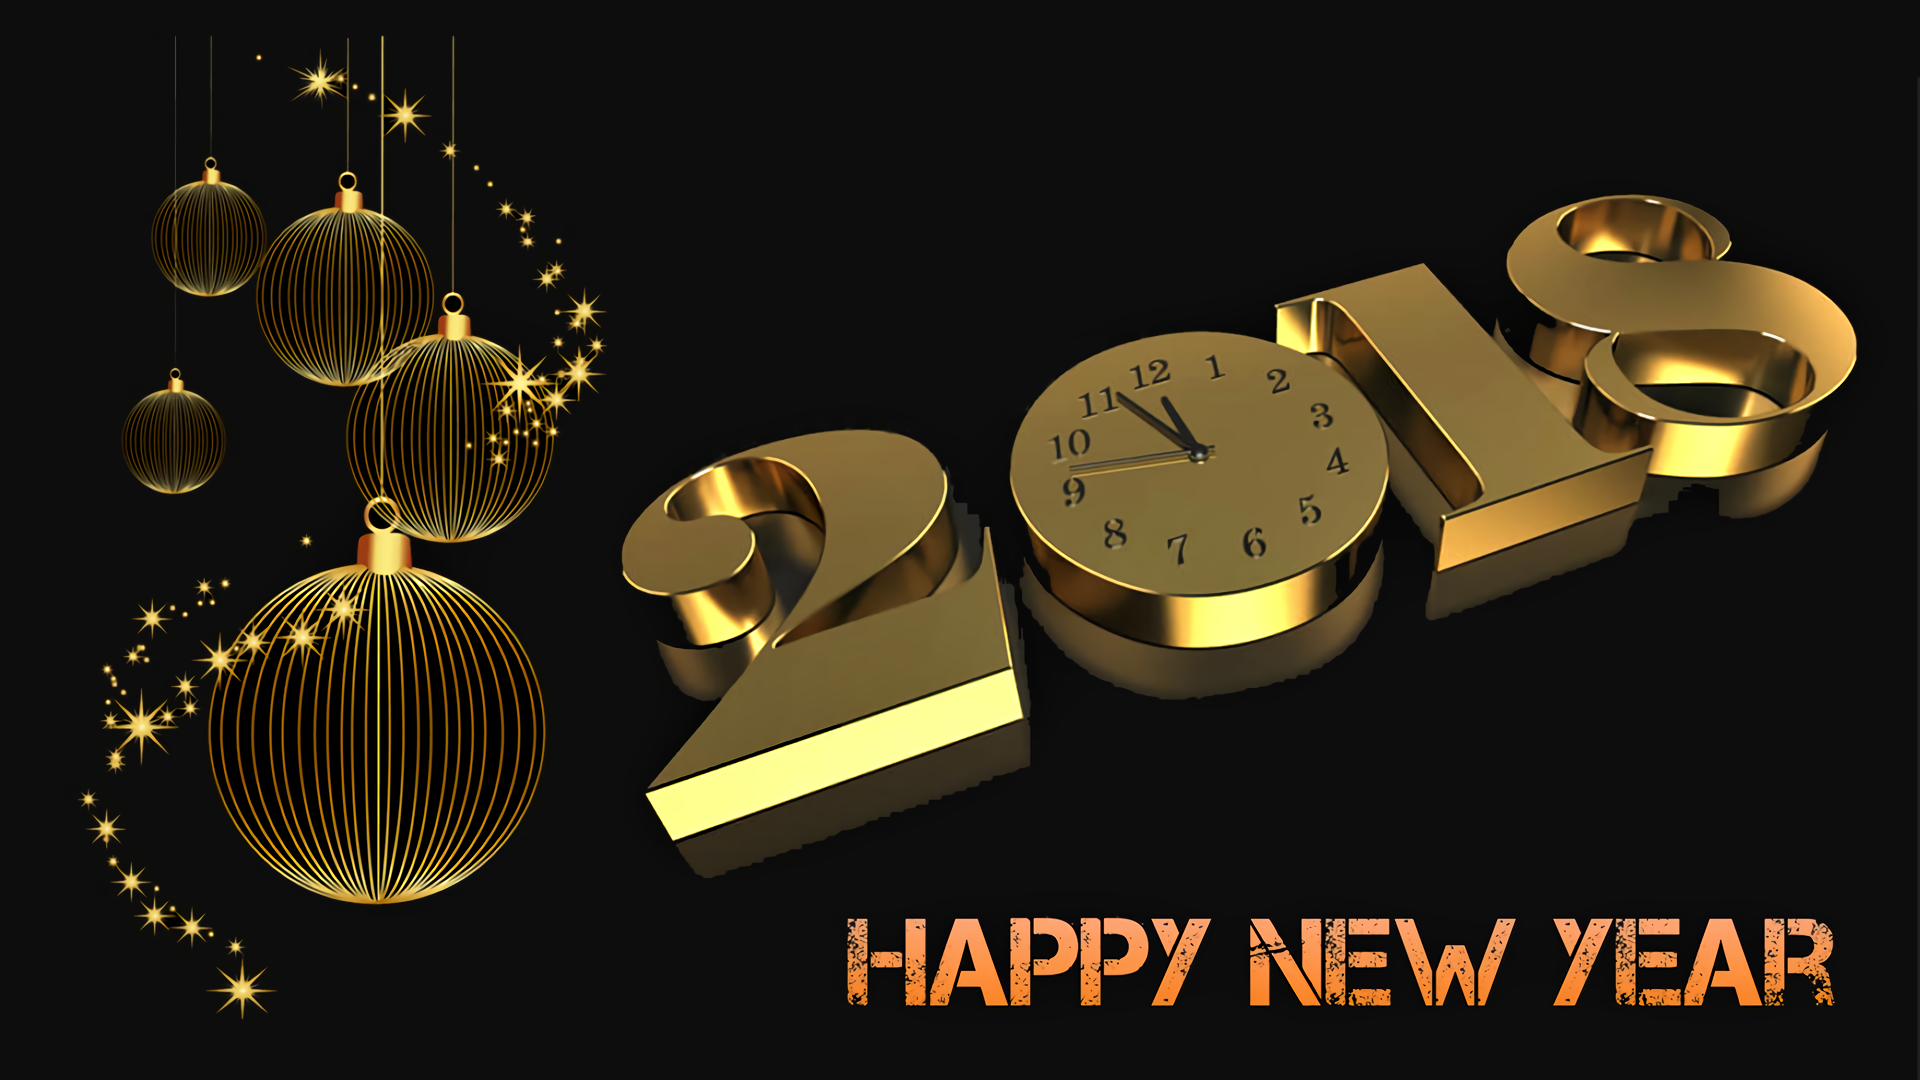 54 new year 2018 hd wallpapers background images wallpaper abyss